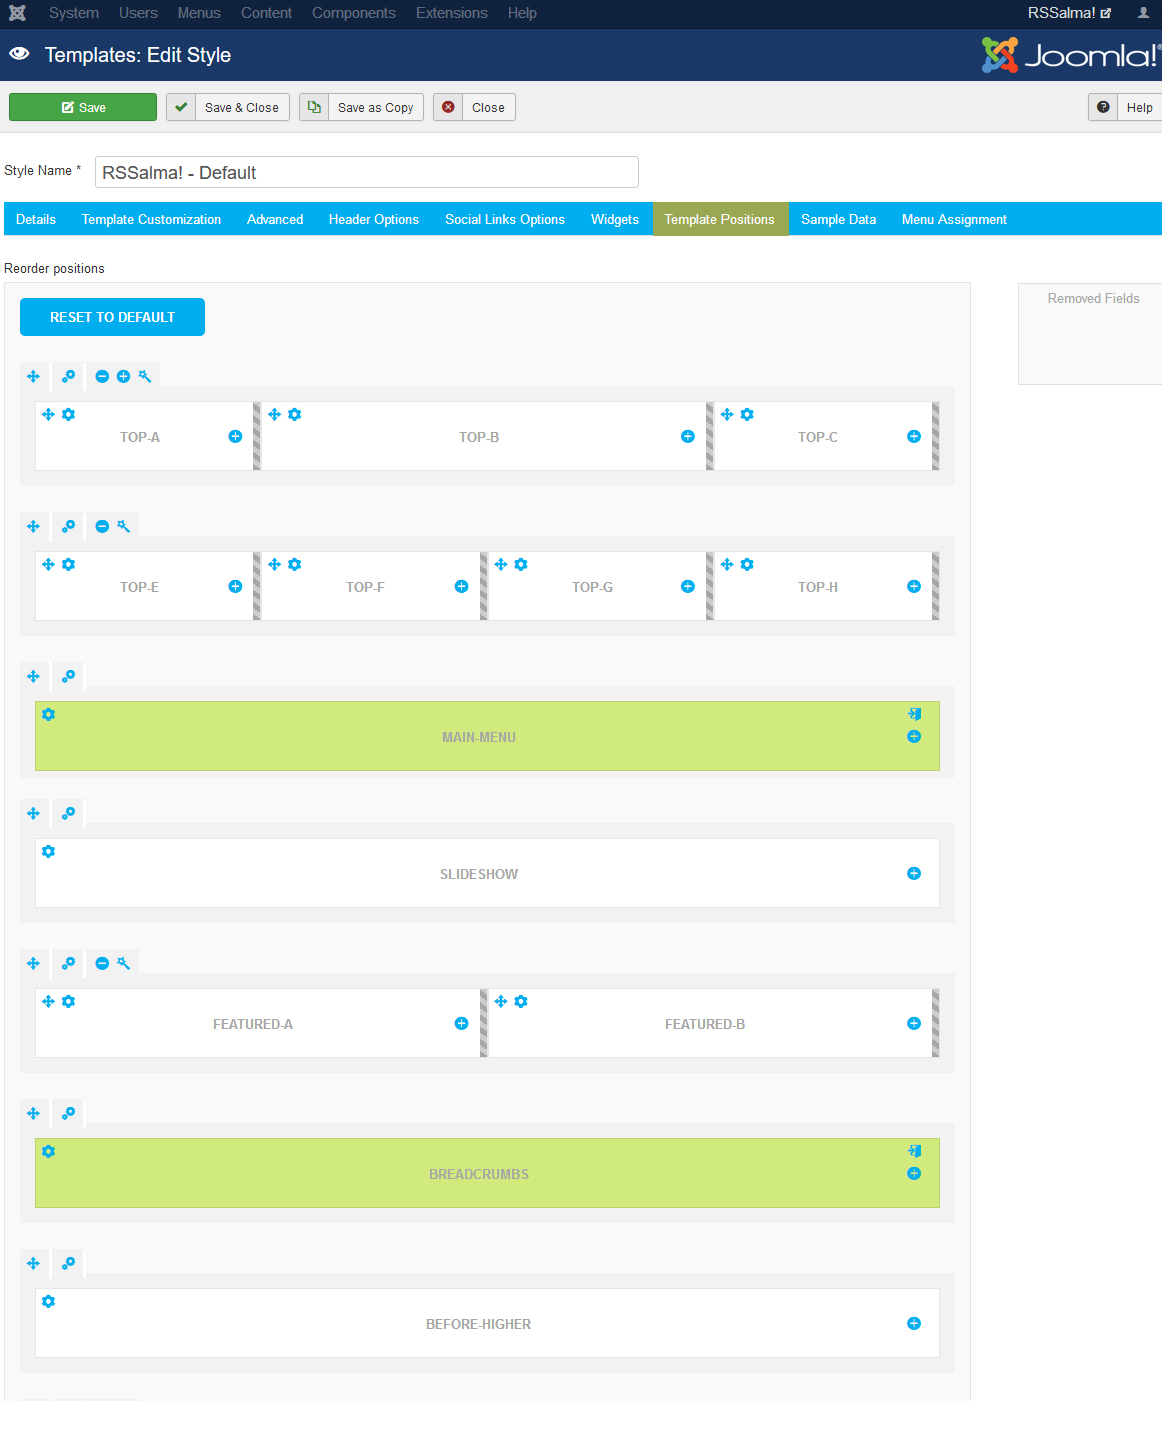 RSSalma! Joomla! 3.x template Template Positions Tab preview